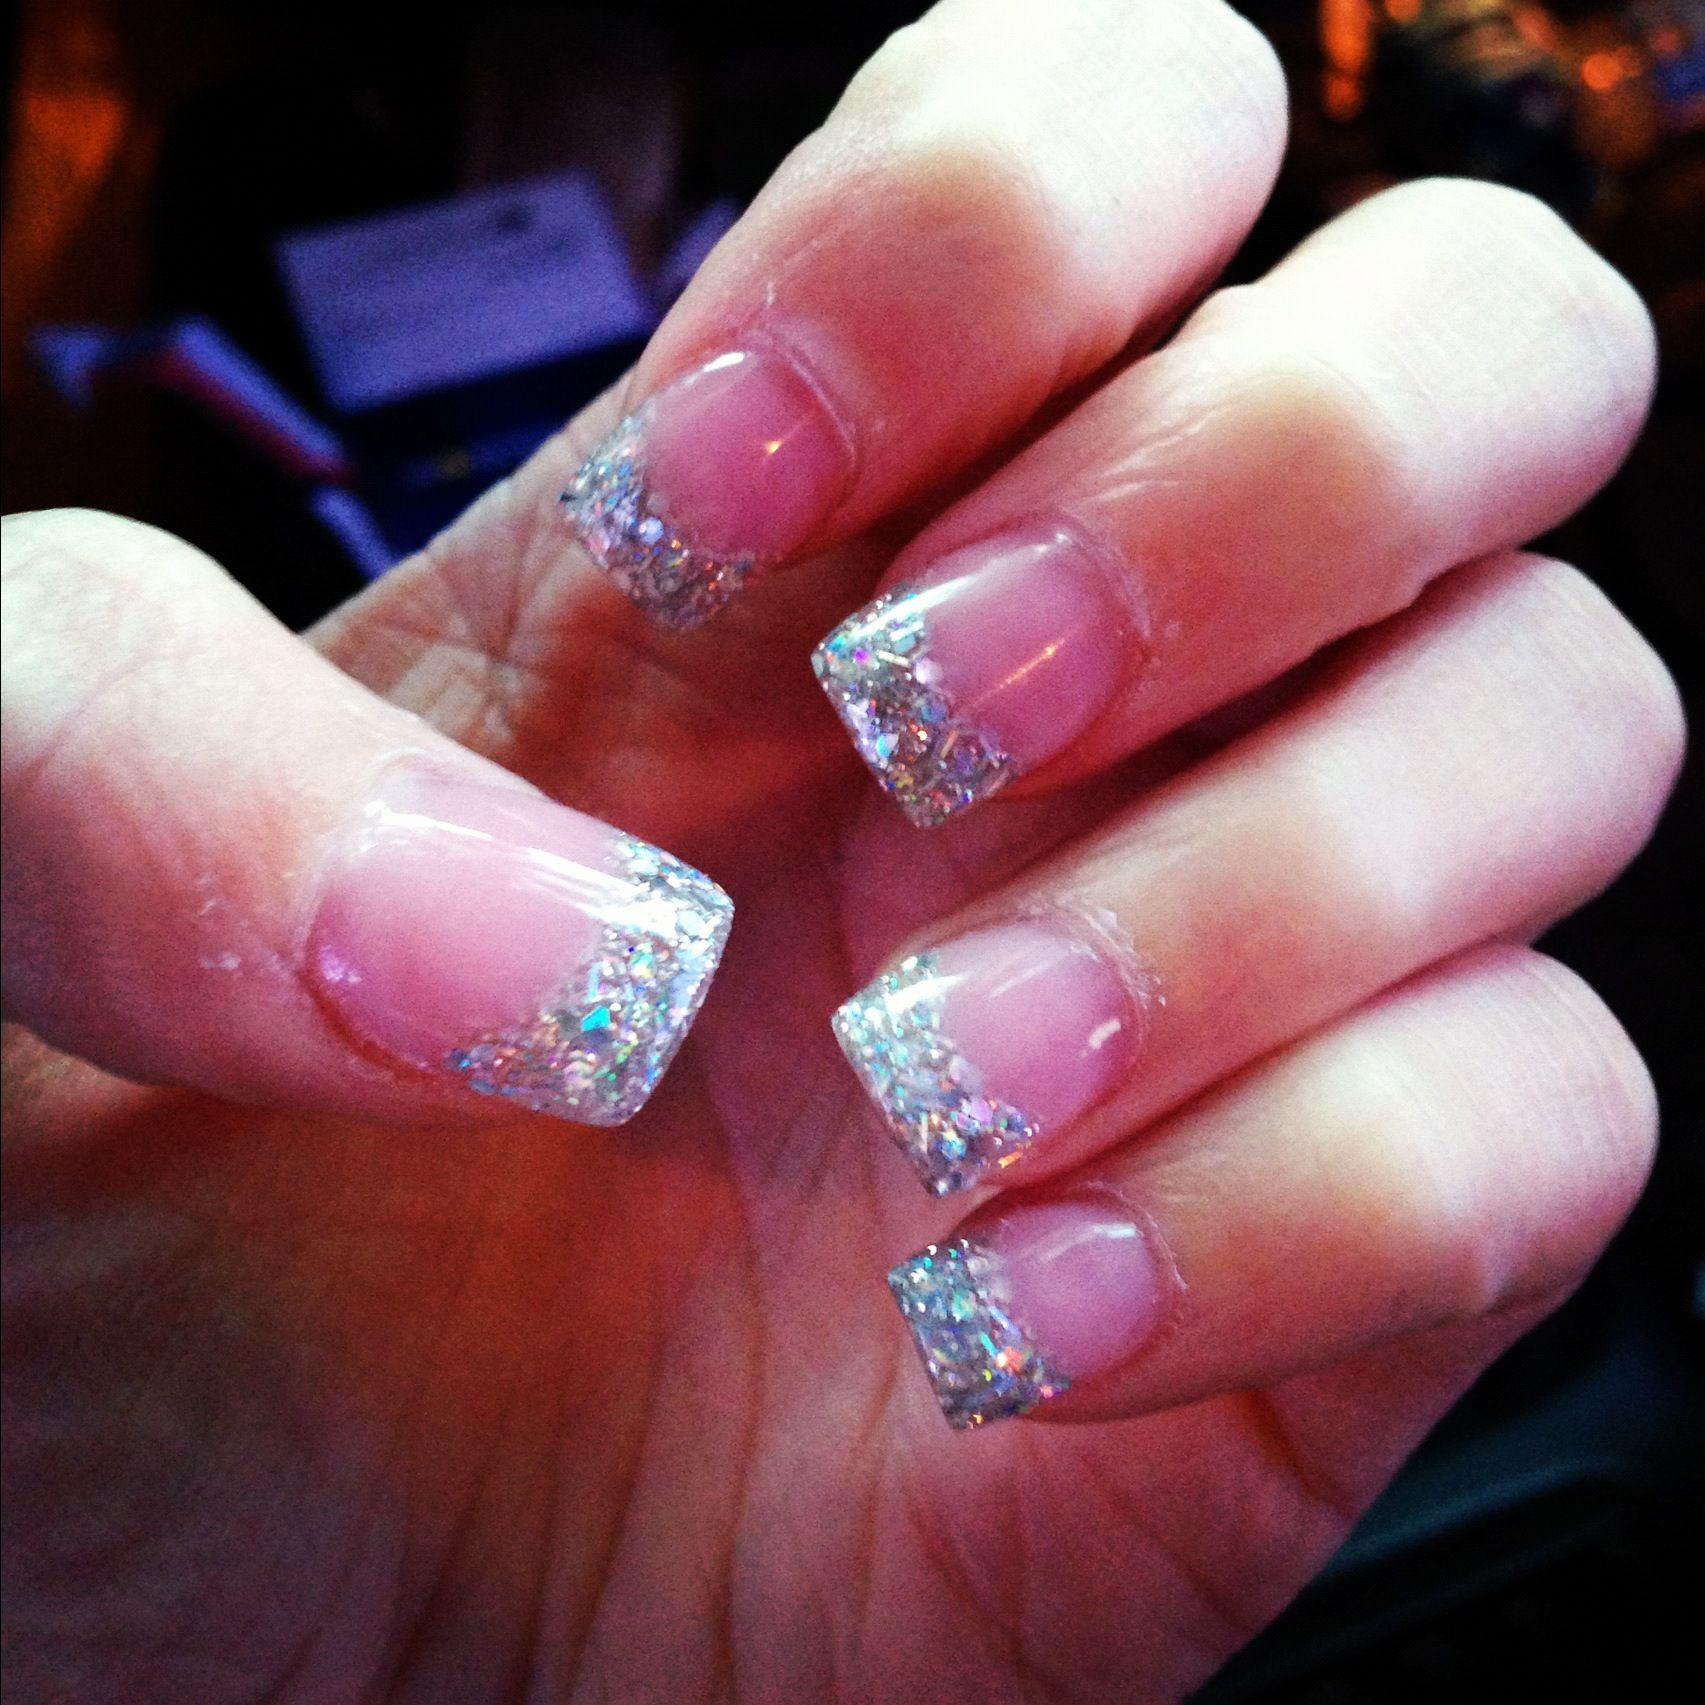 97+ Acrylic Nails White Glitter Tips - Acrylic Nails With White Tips ...